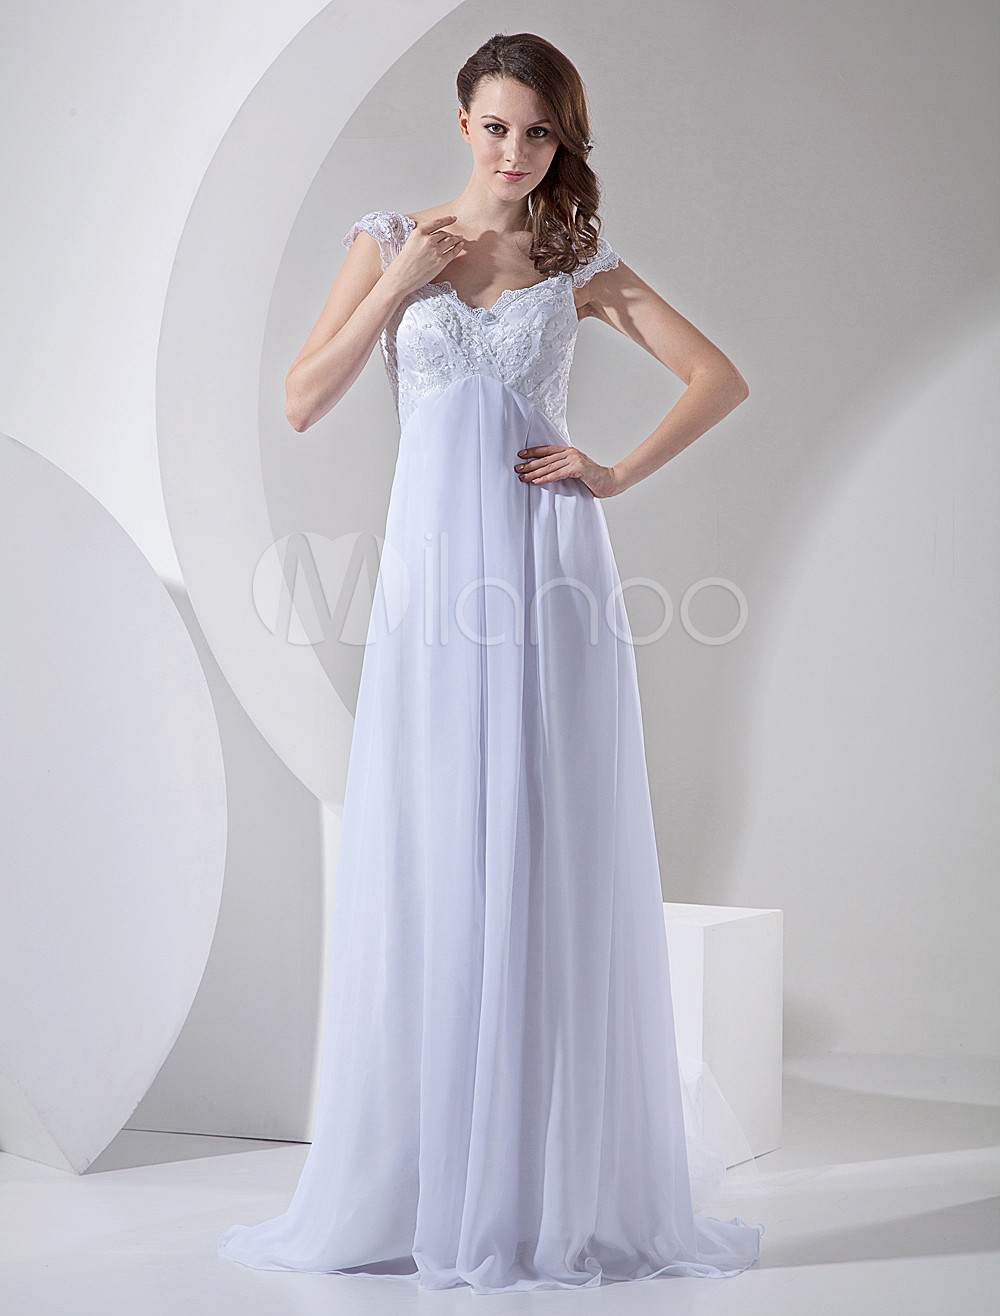 a0f22e74dd White Wedding Dresses Chiffon V Neck Beach Bridal Dress Lace Beading Empire  Waist Summer Wedding Gown With Train - Milanoo.com